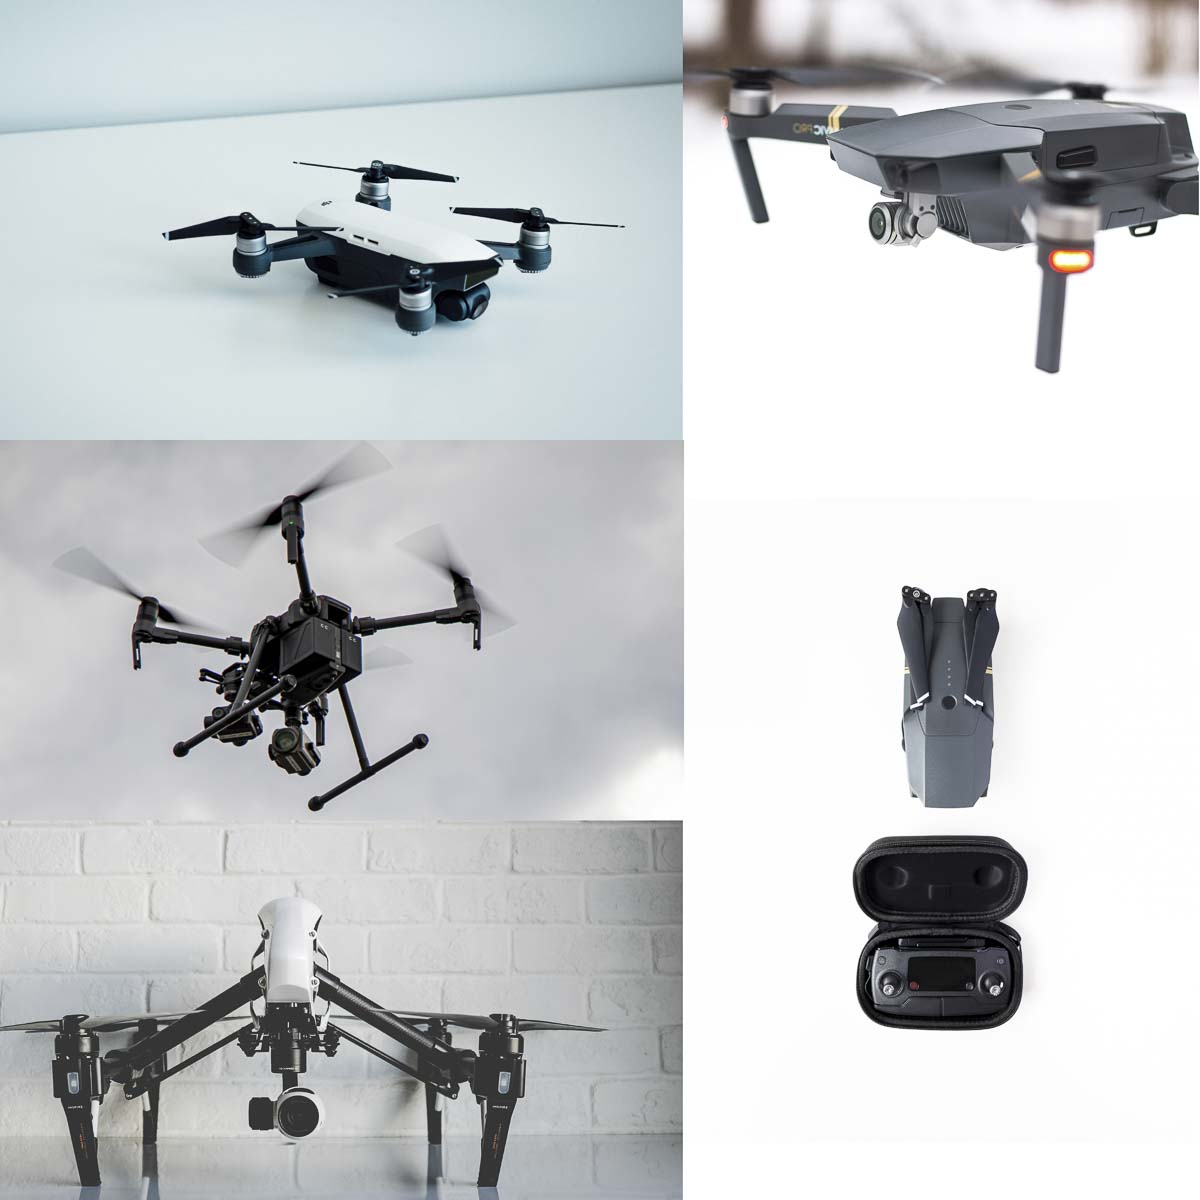 DJI Spark (top left), DJI Mavic Pro (top right), DJI Matrice 210 (middle left), DJI Mavic Pro folder with controller (middle right), DJI Inspire (bottom left) are shown here. Photos from Unsplash.com and Jacob Granneman